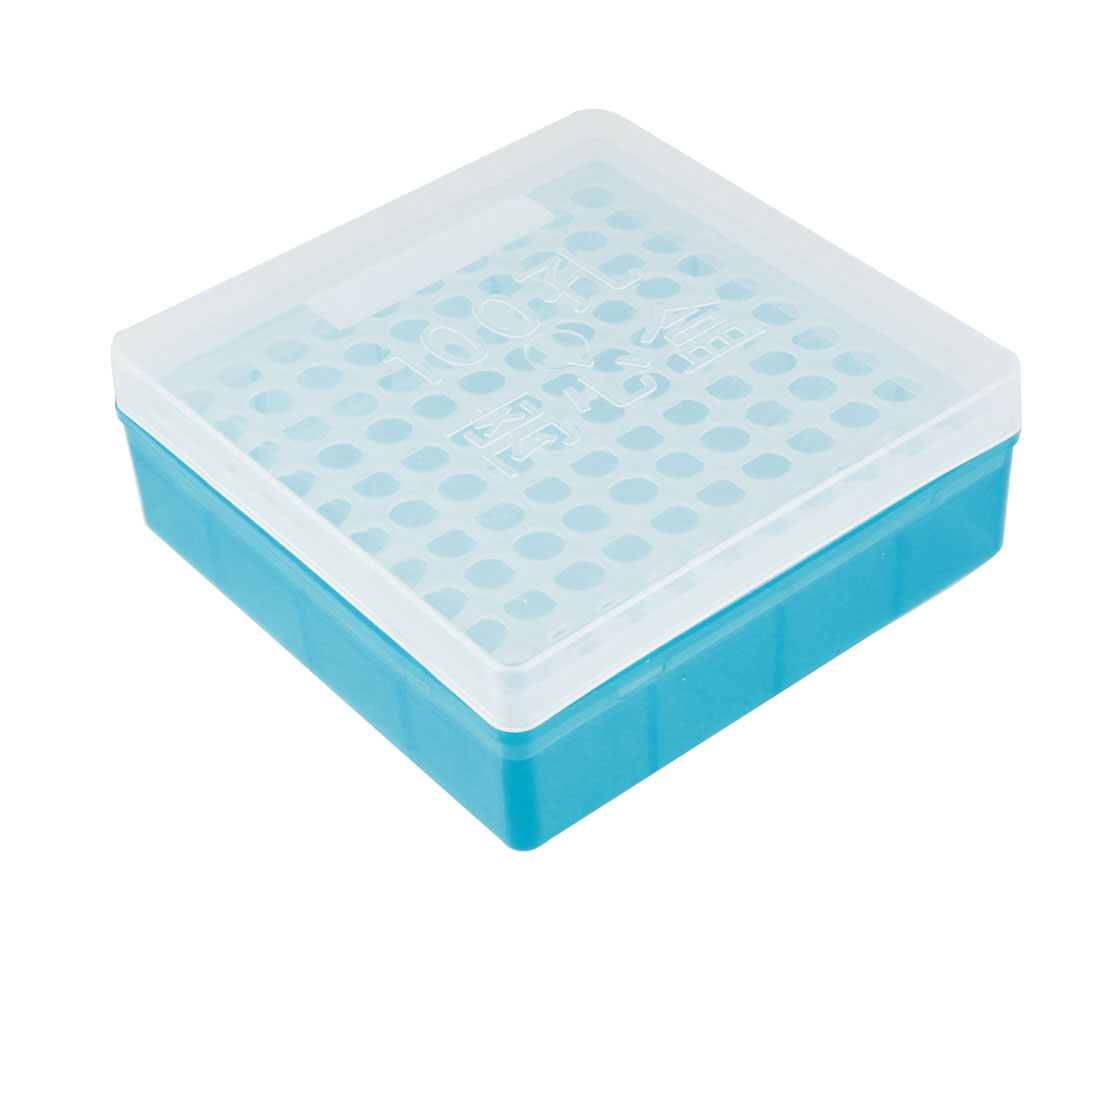 Plastic Square 100 Positions Laboratory 1.5ml Centrifuge Tube Case Box